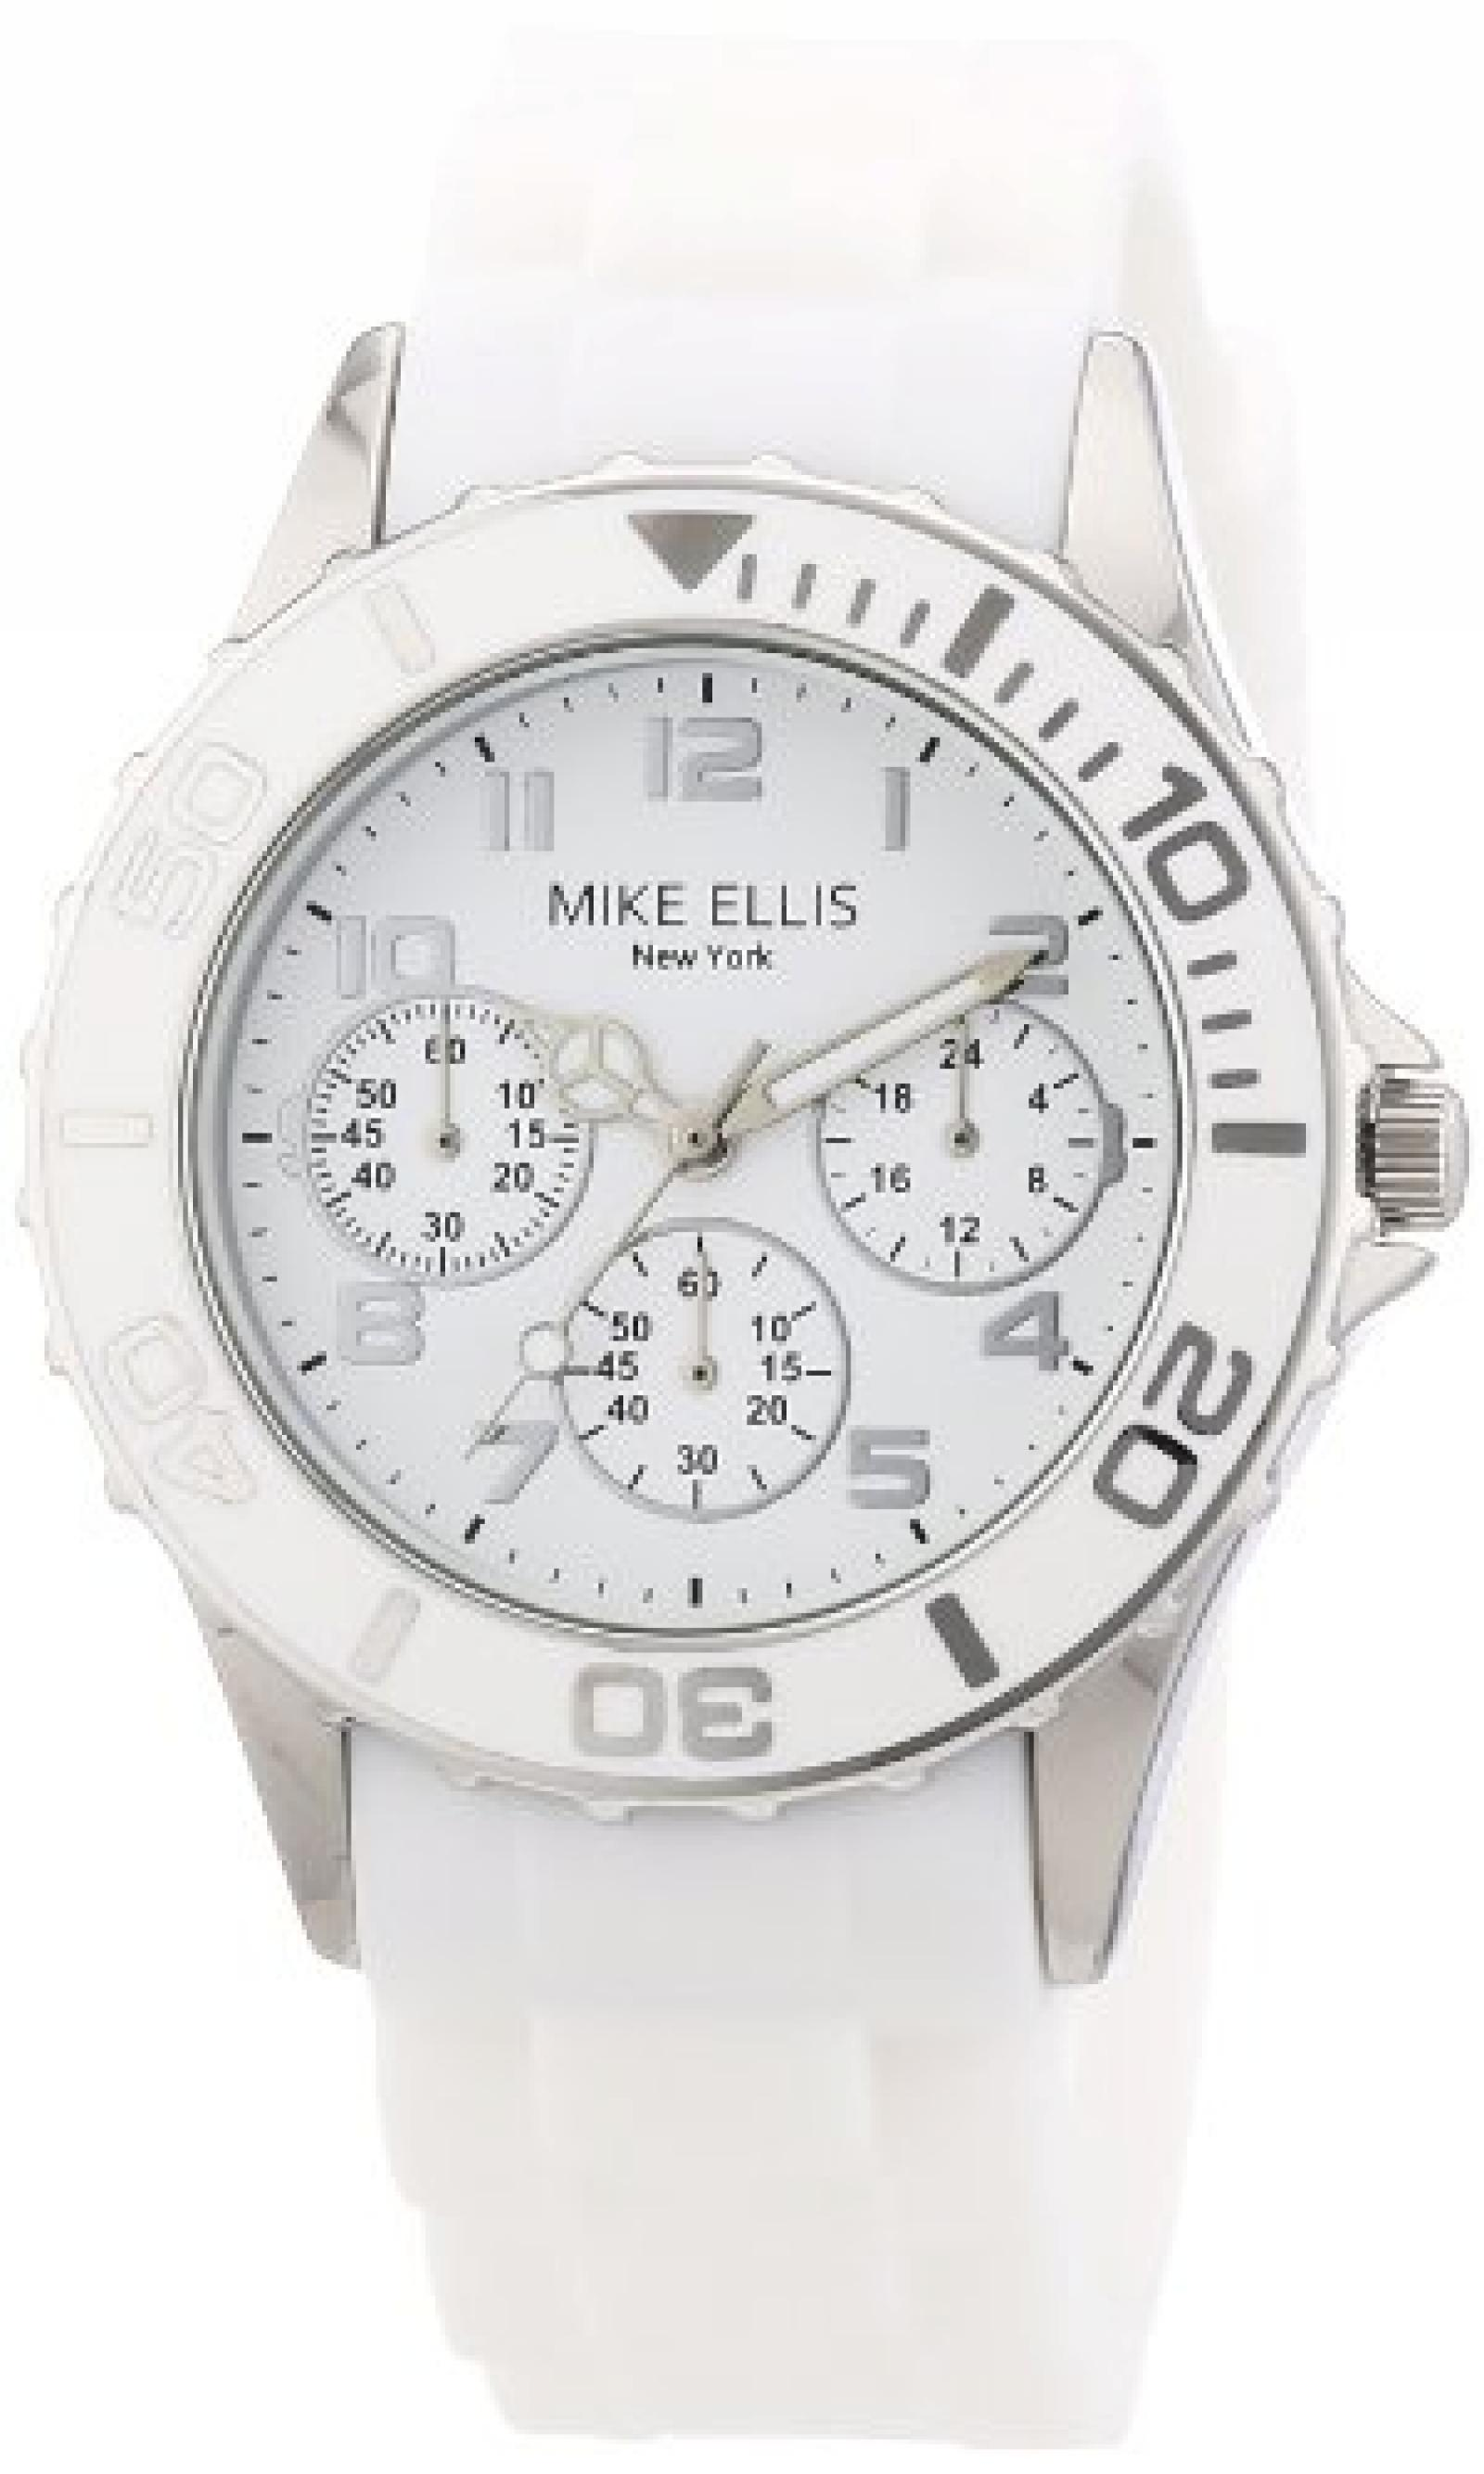 Mike Ellis New York Damen-Armbanduhr XS Analog Quarz Silikon S2703ASS